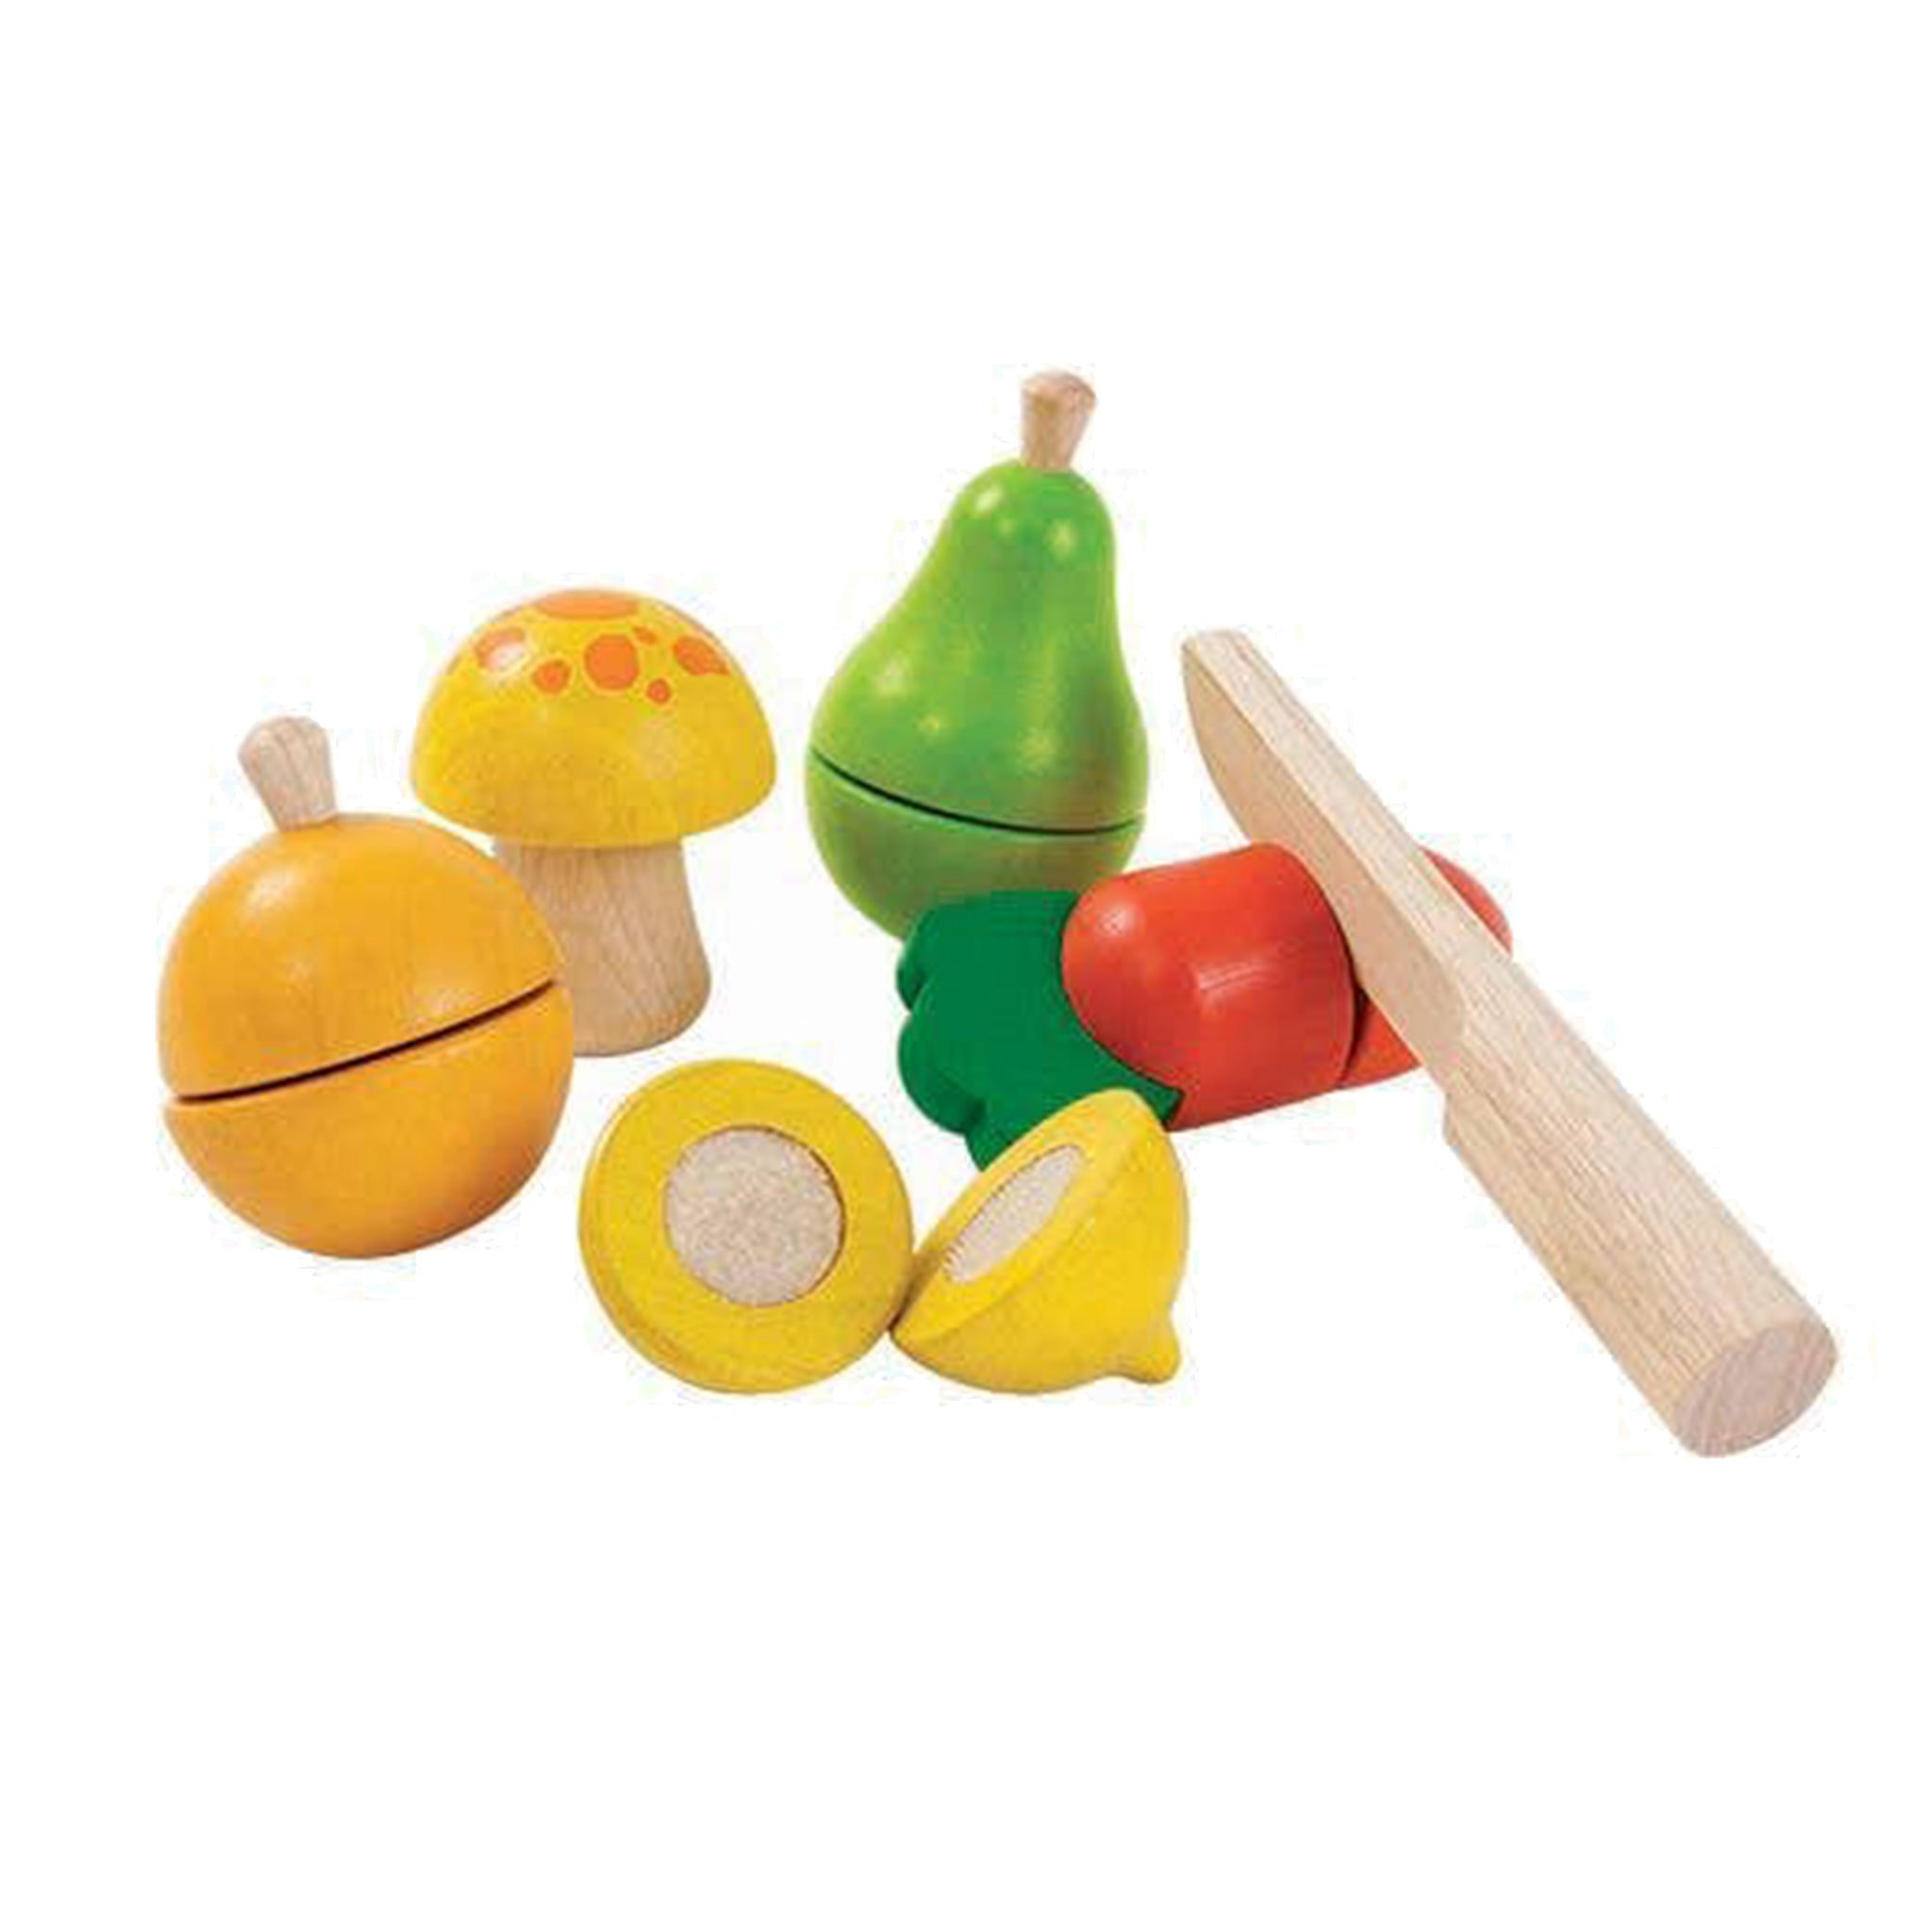 Toddler Fruit and Vegetable Cut Play Set